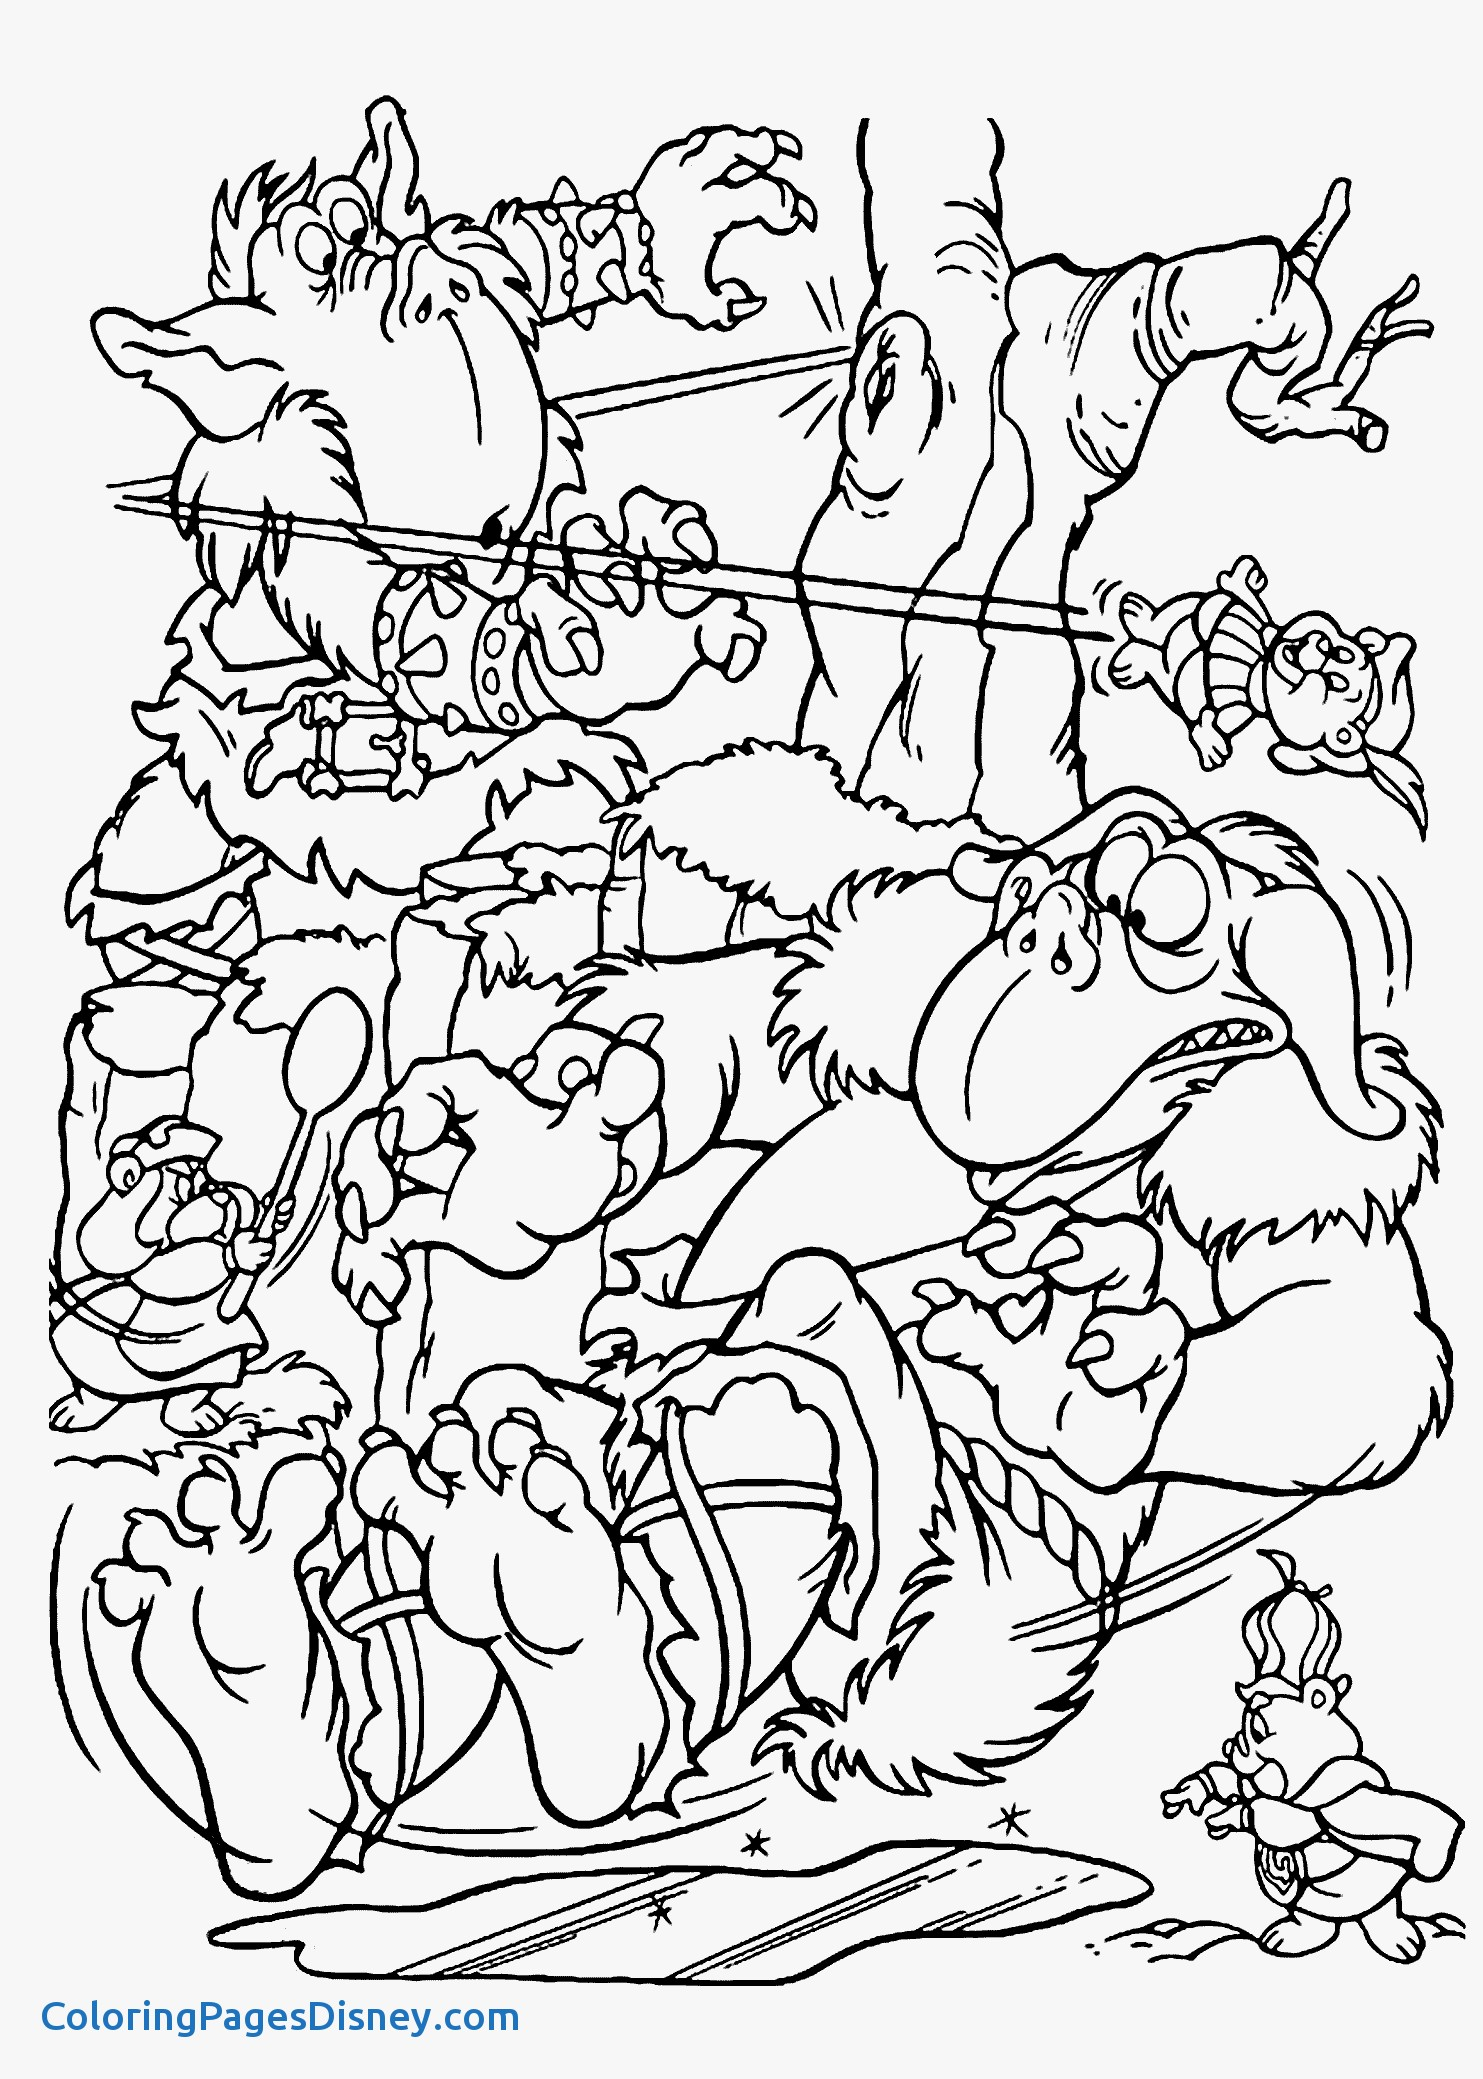 goblin pictures to color coloring sheet goblin by pepperonideluxe on deviantart color to goblin pictures